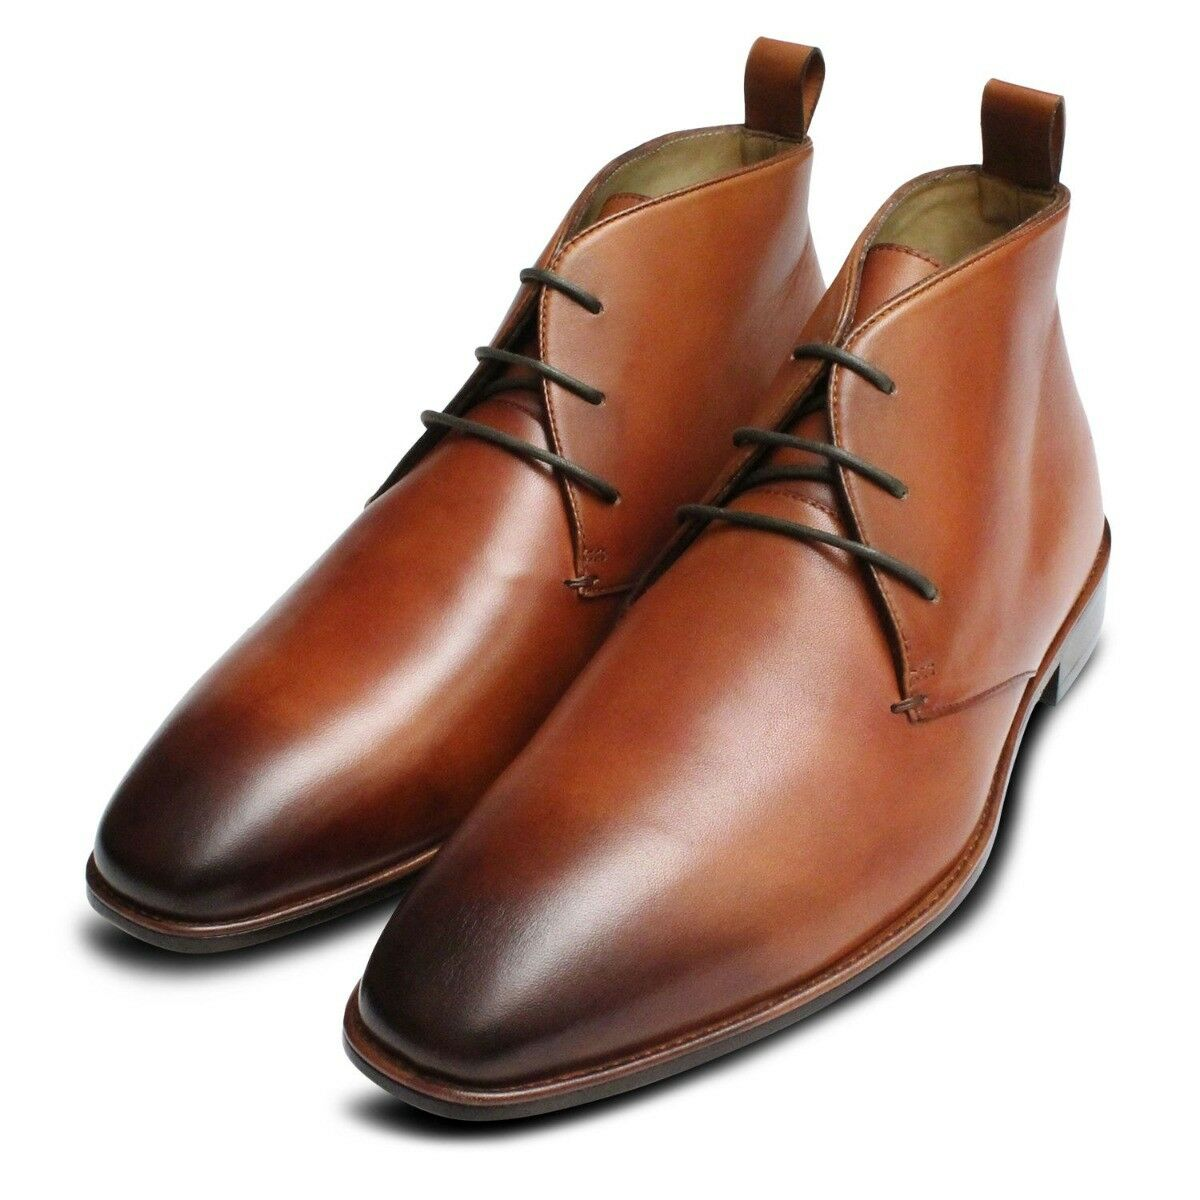 Tan Leather Chukka Stiefel Stiefel Stiefel for Men 64fdfd